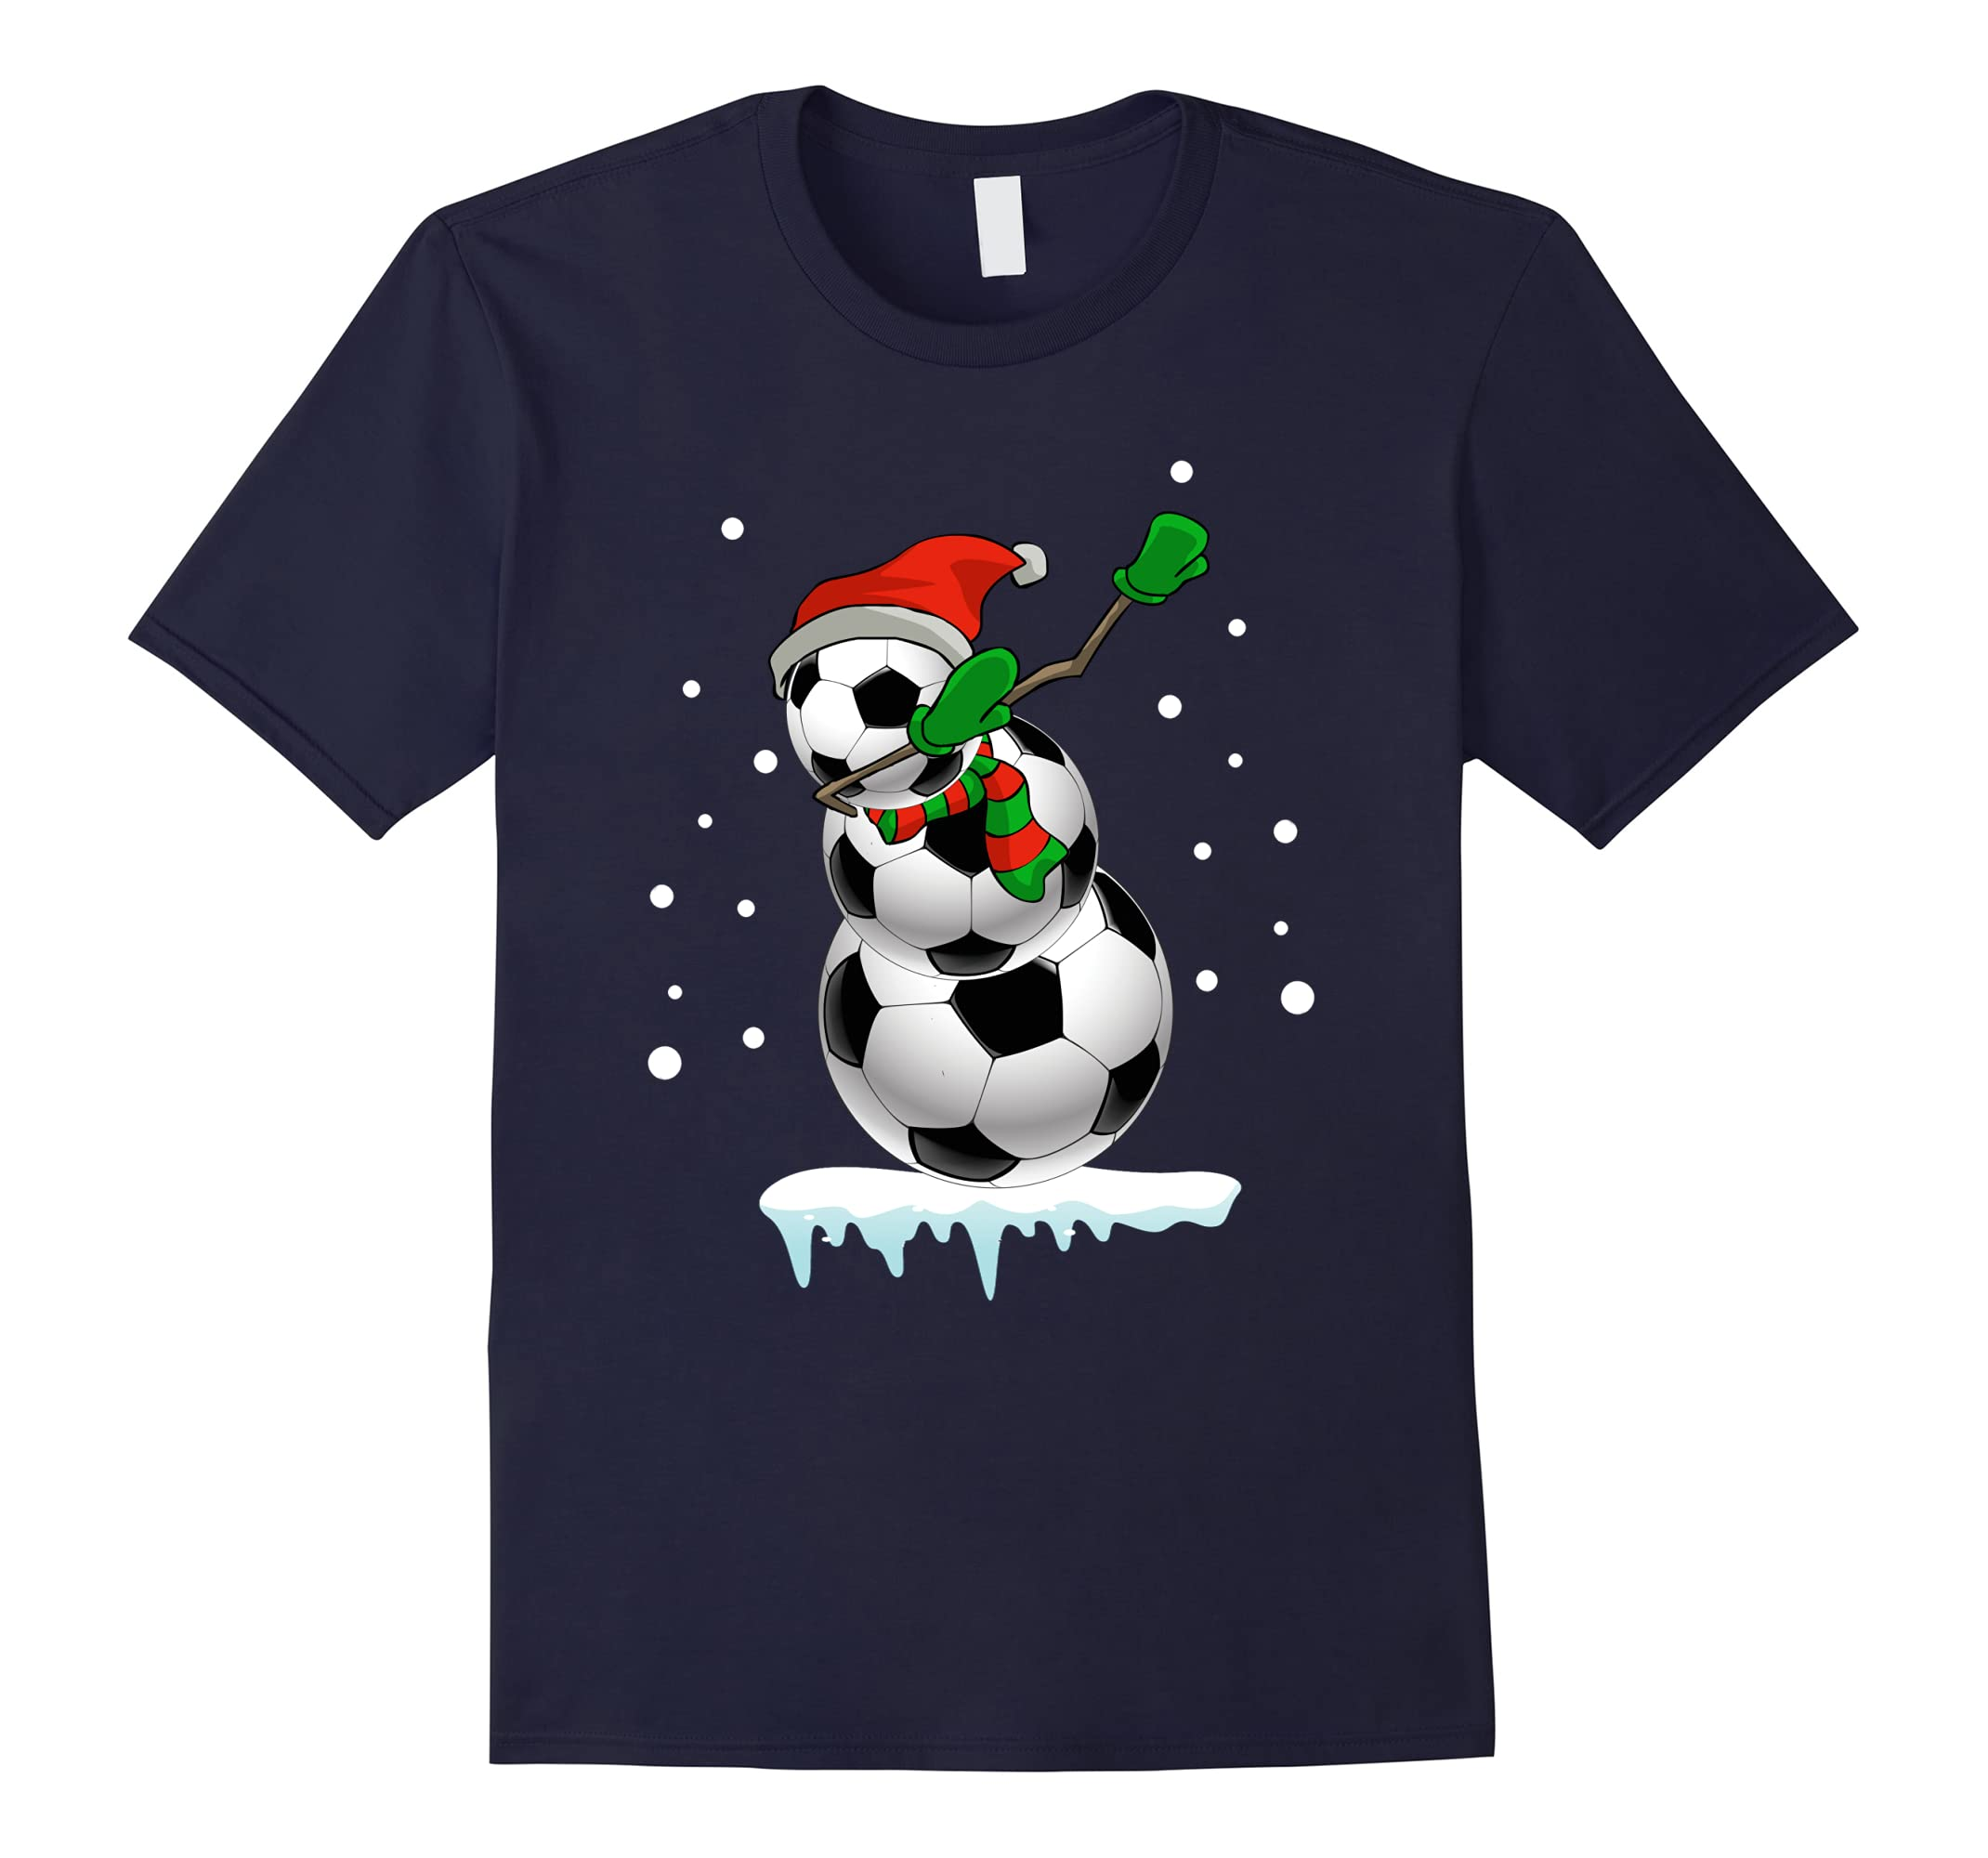 Dabbing Snowman Soccer T-Shirt Fun Christmas Gift Shirt-RT